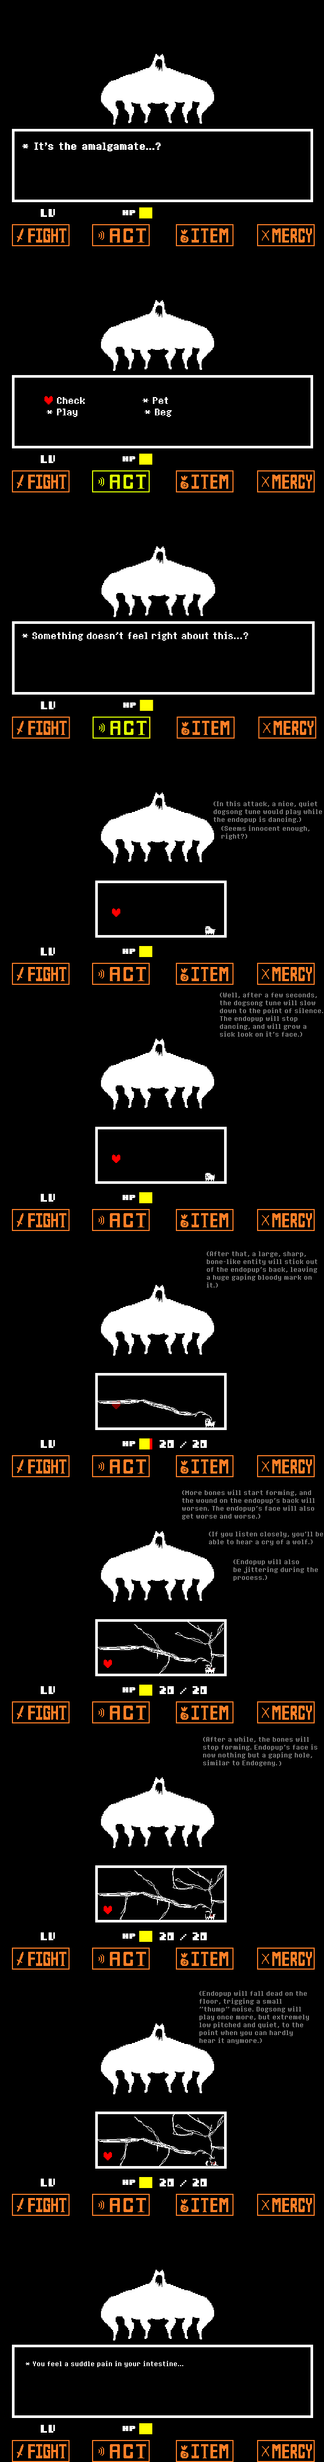 Undertale...?: Scarier Endogeny fight preview by widward202thesecond